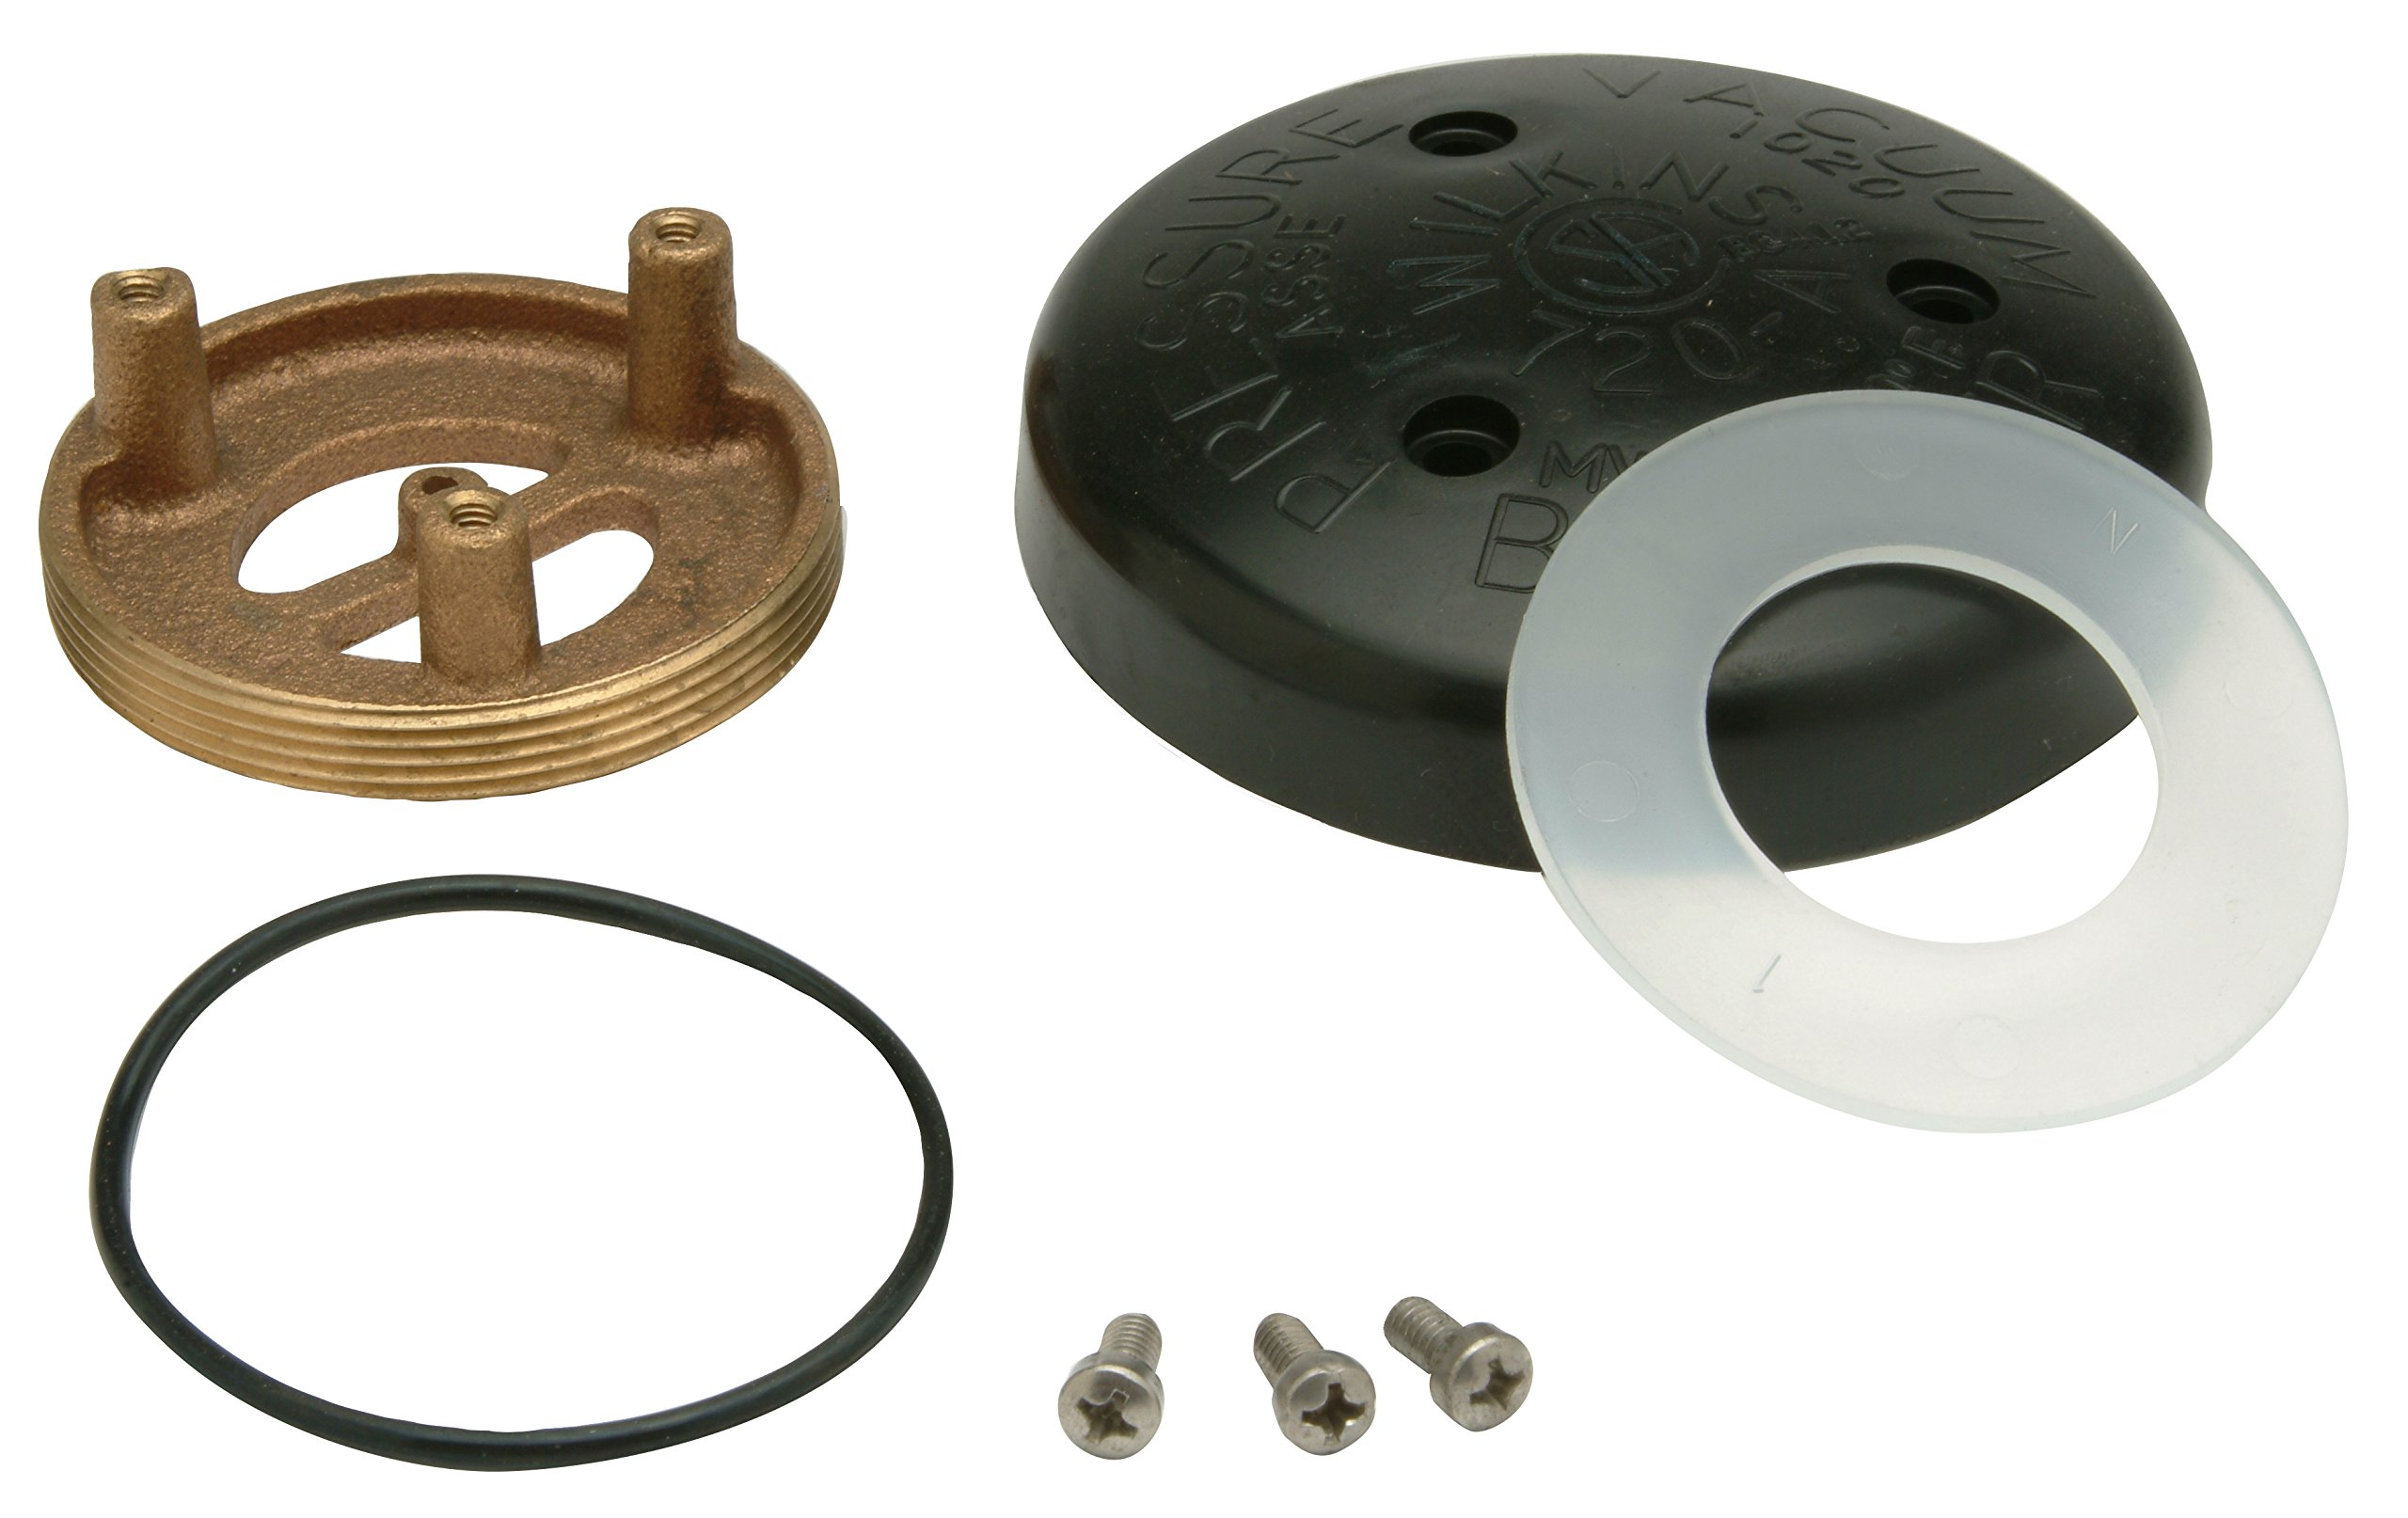 Zurn RK1-720AB Wilkins Pressure Vacuum Breaker (PVB) Bonnet Repair Kit for 1/2'' to 1'' Model 720A and for 0.5'' to 1'' by Zurn (Image #1)